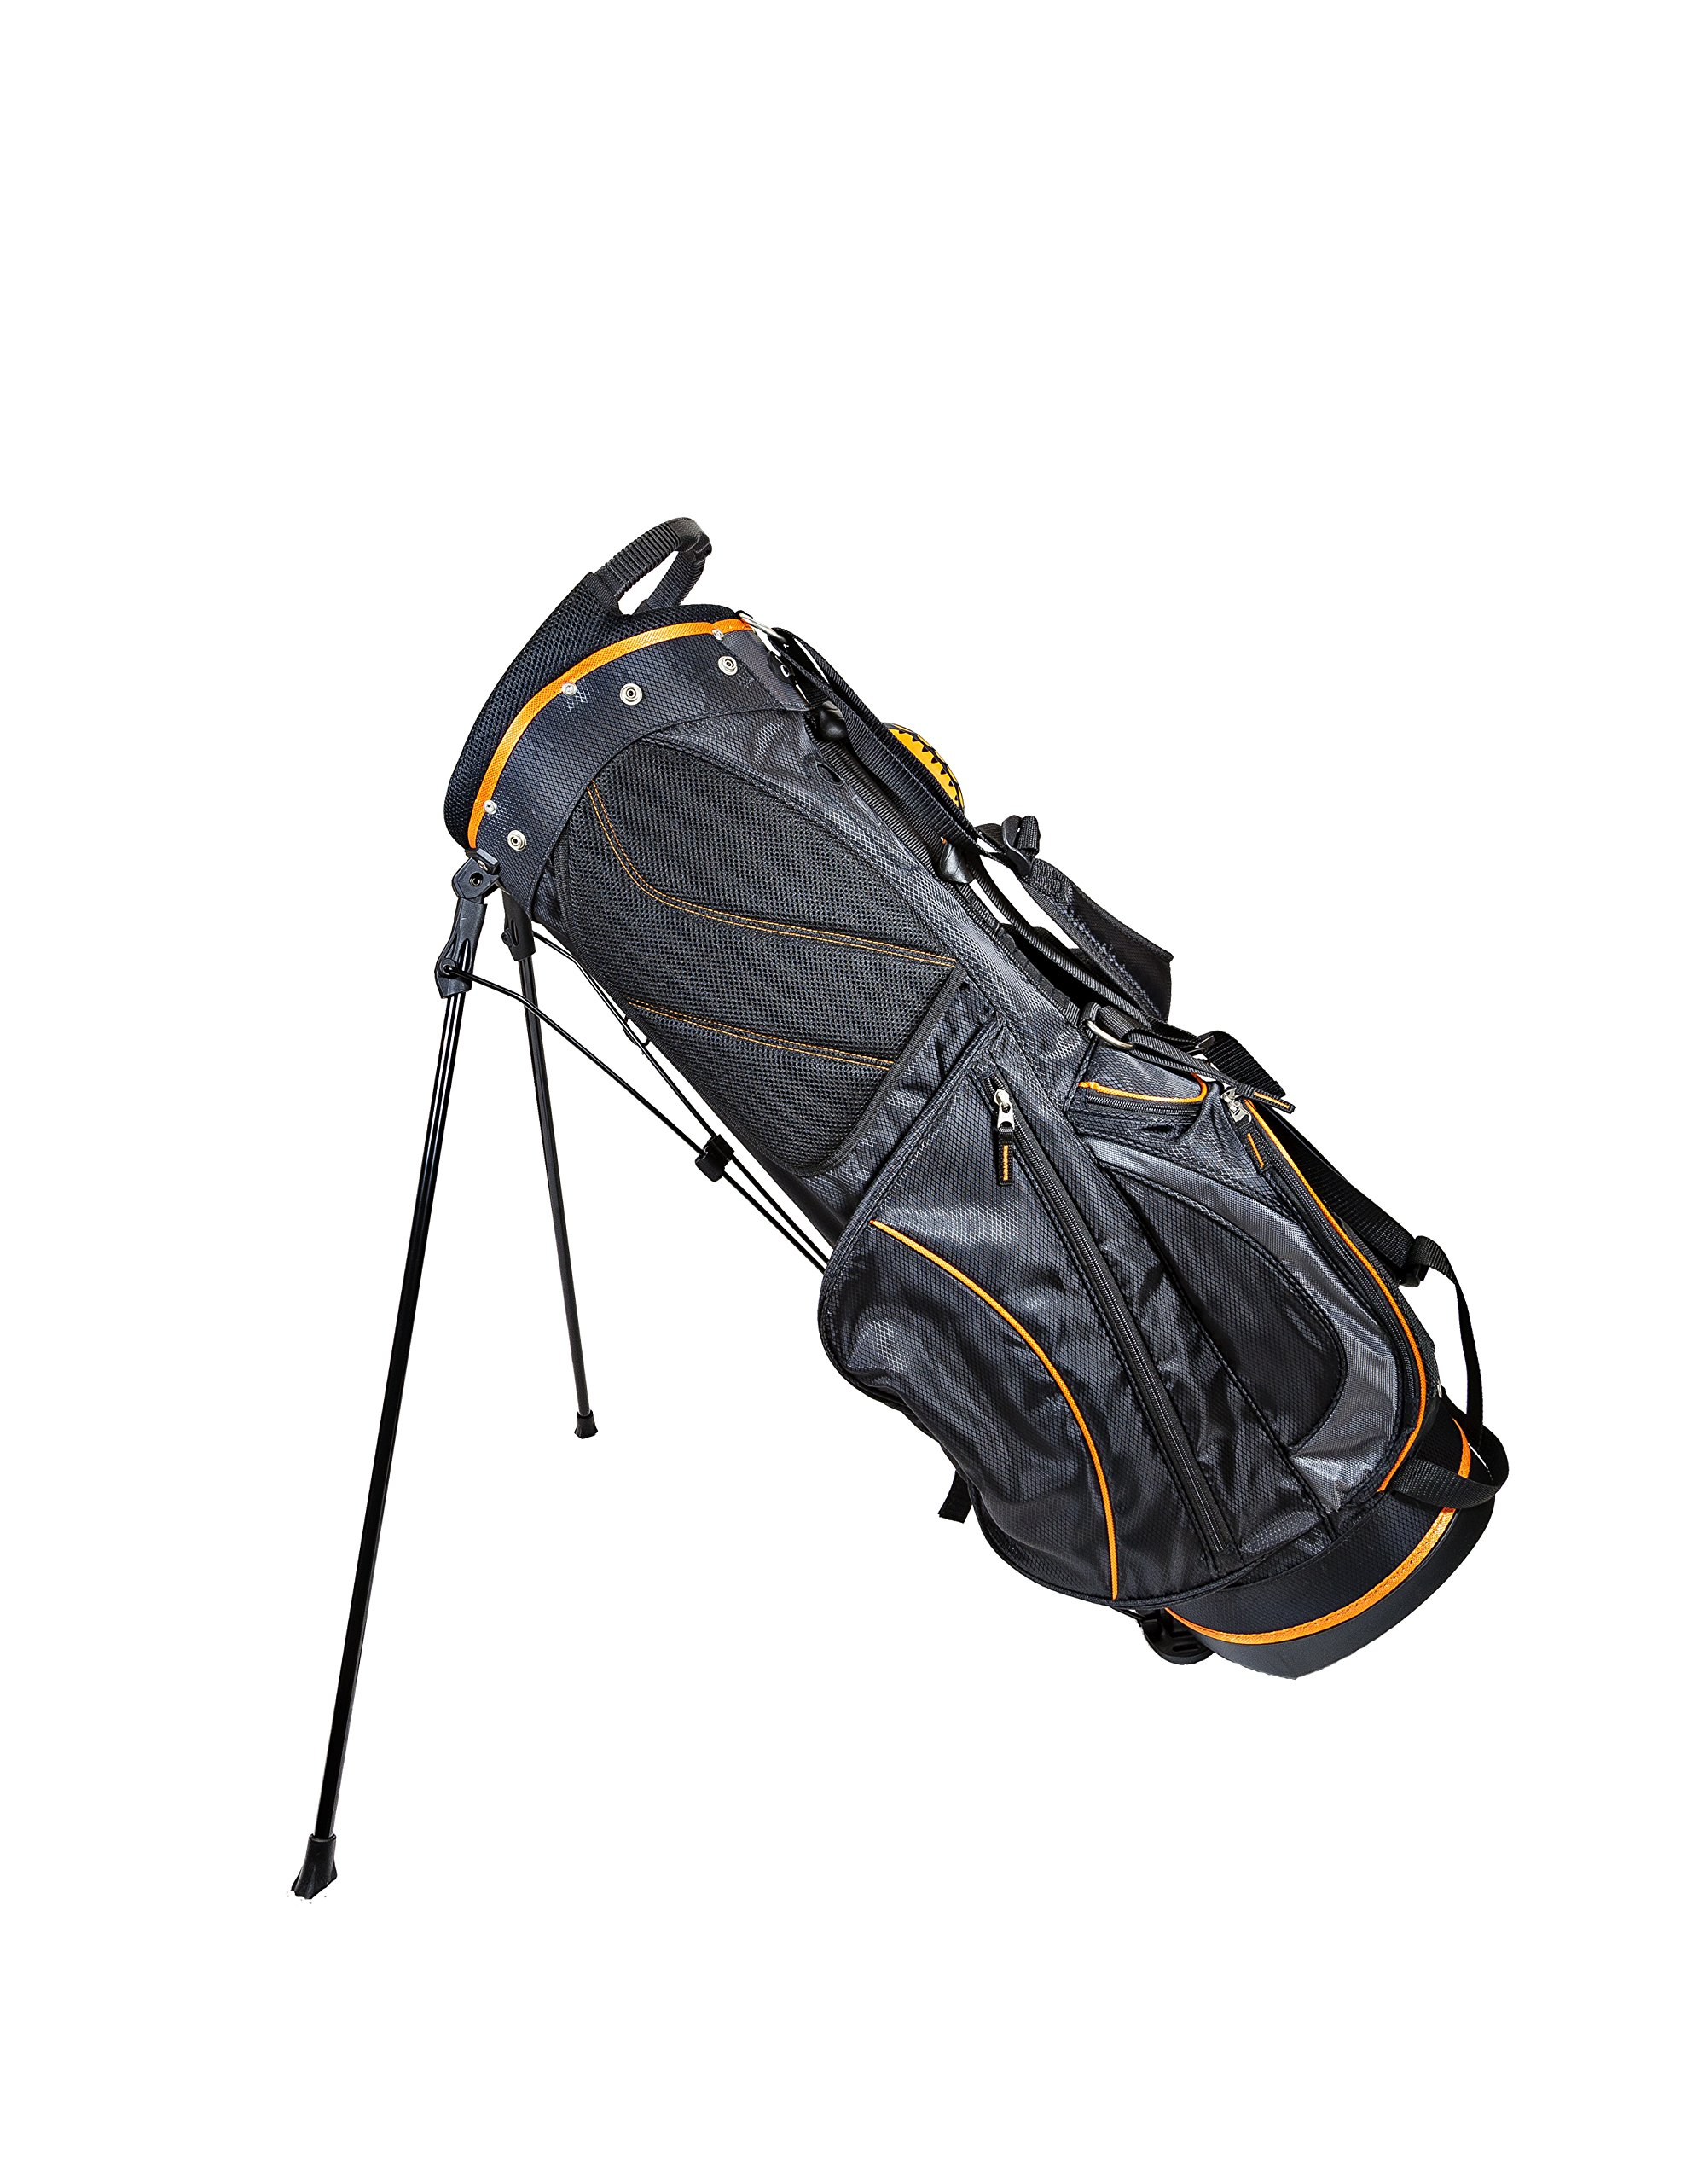 Club Champ Deluxe Stand Golf Bag, Black/Orange by Club Champ